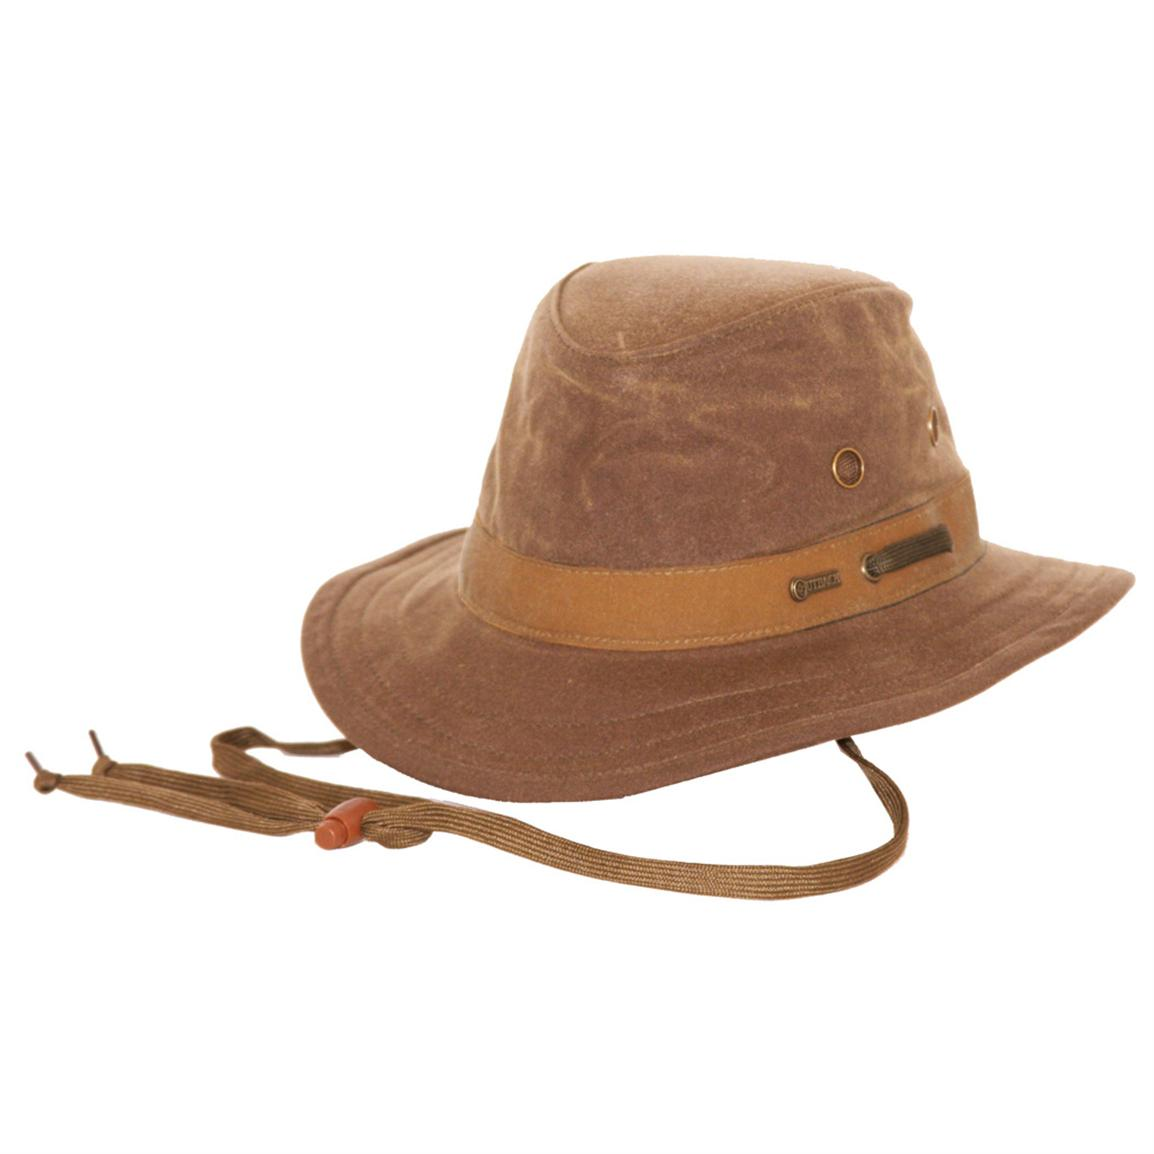 Outback Trading Willis Hat, Field Tan